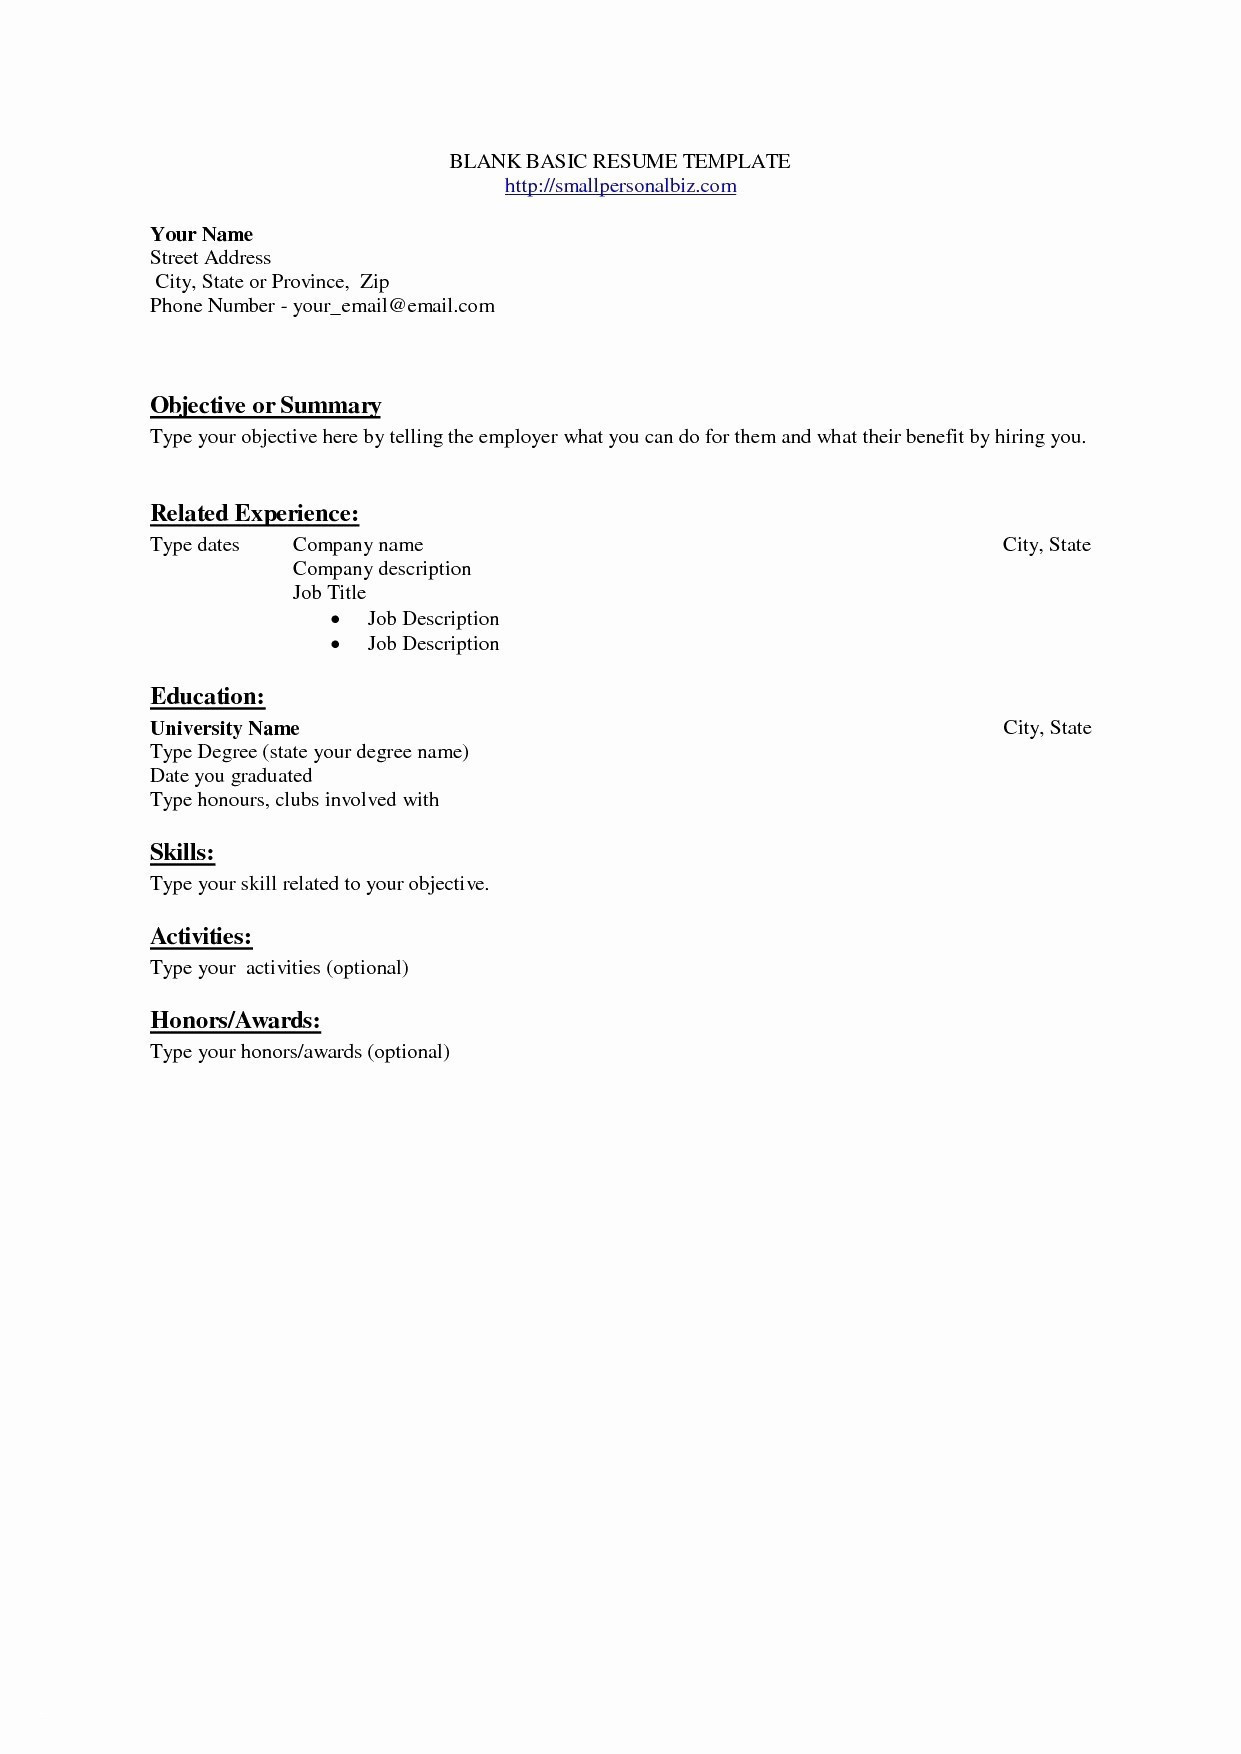 Janitor Resume Template - Janitor Resume Sample Lovely format for A Resume Luxury Janitor